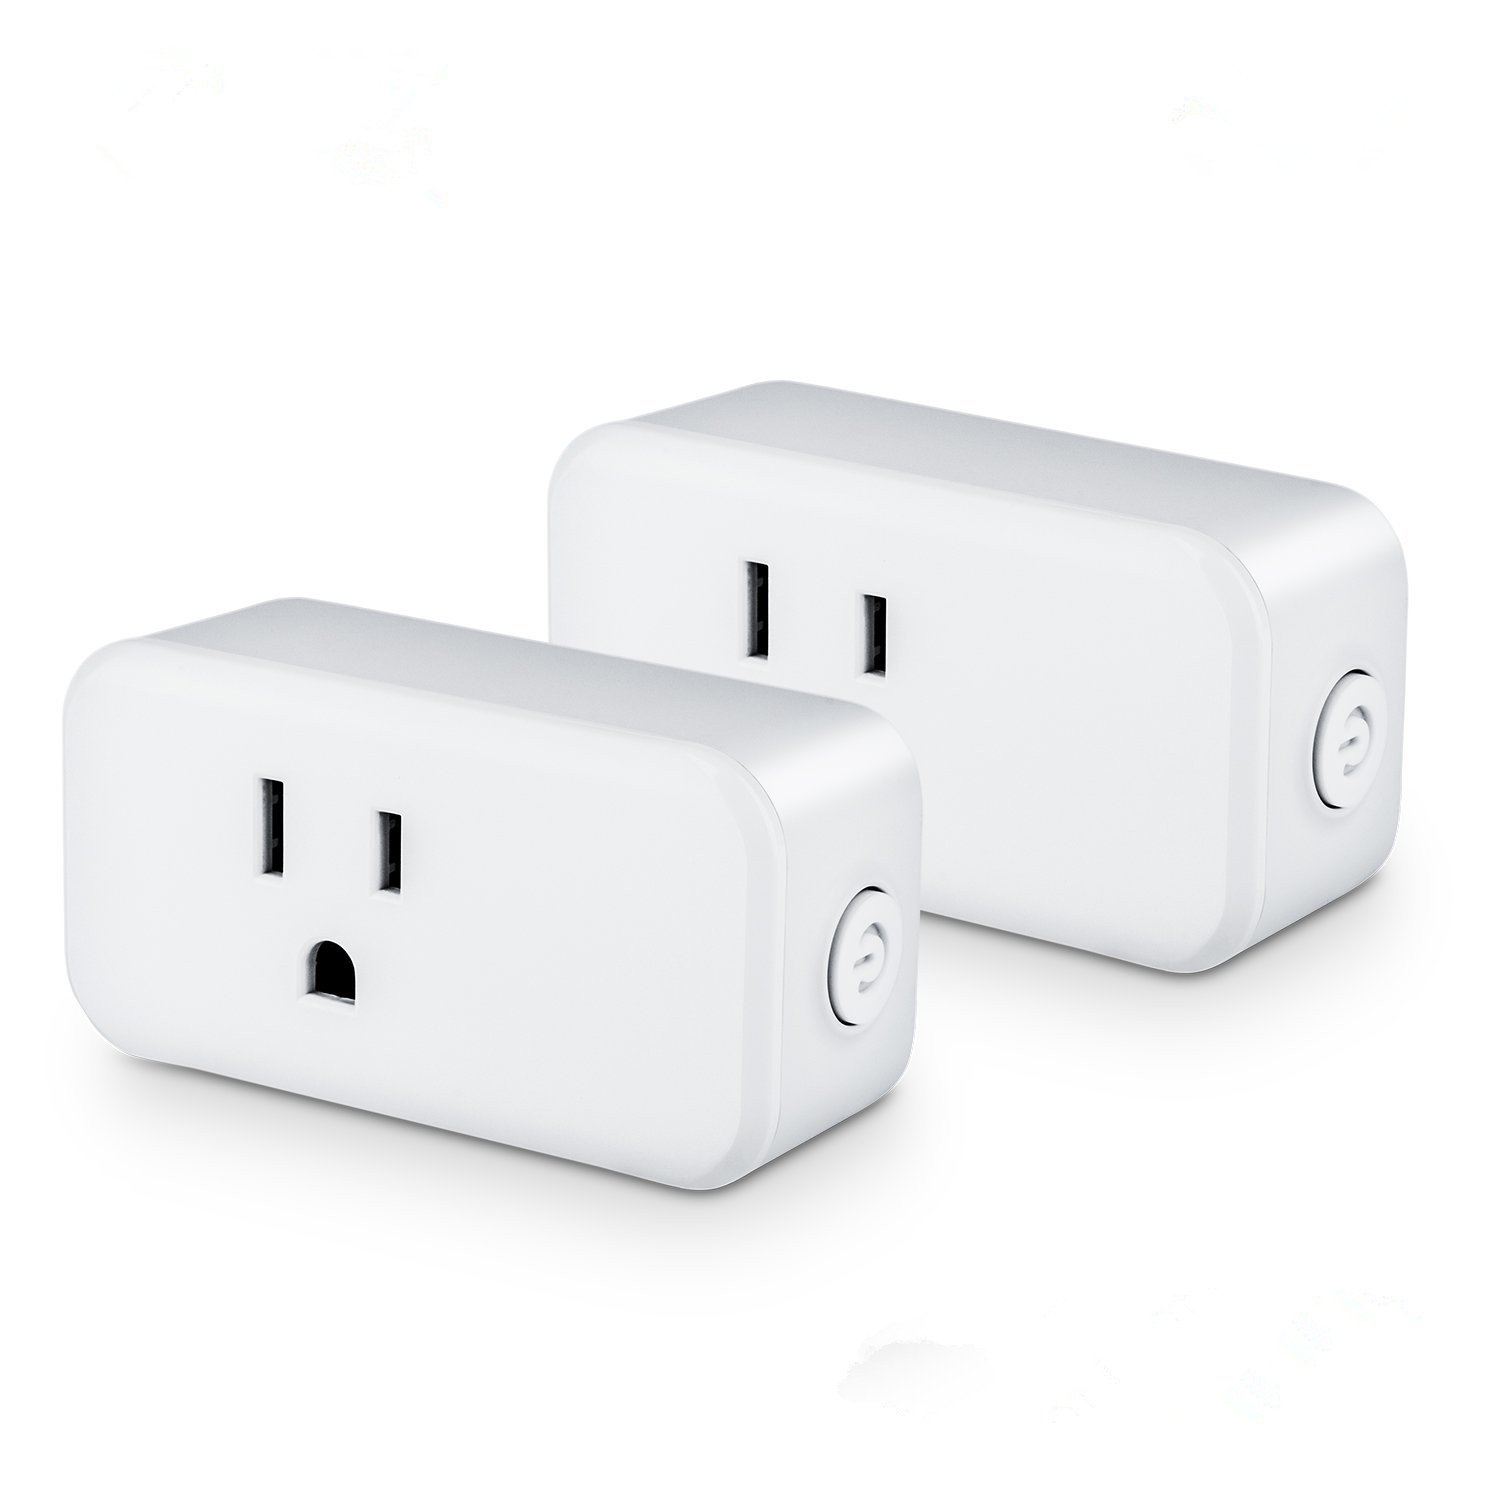 Wifi Smart Plug,Smart Socket,15A Wireless Socket Outlet Remotely Controls your Devices from anywhere,Smart Electrical Outlets Compatible with Amazon Alexa Google Home IFTTT,Timer Outlet[ 2 Pack ]